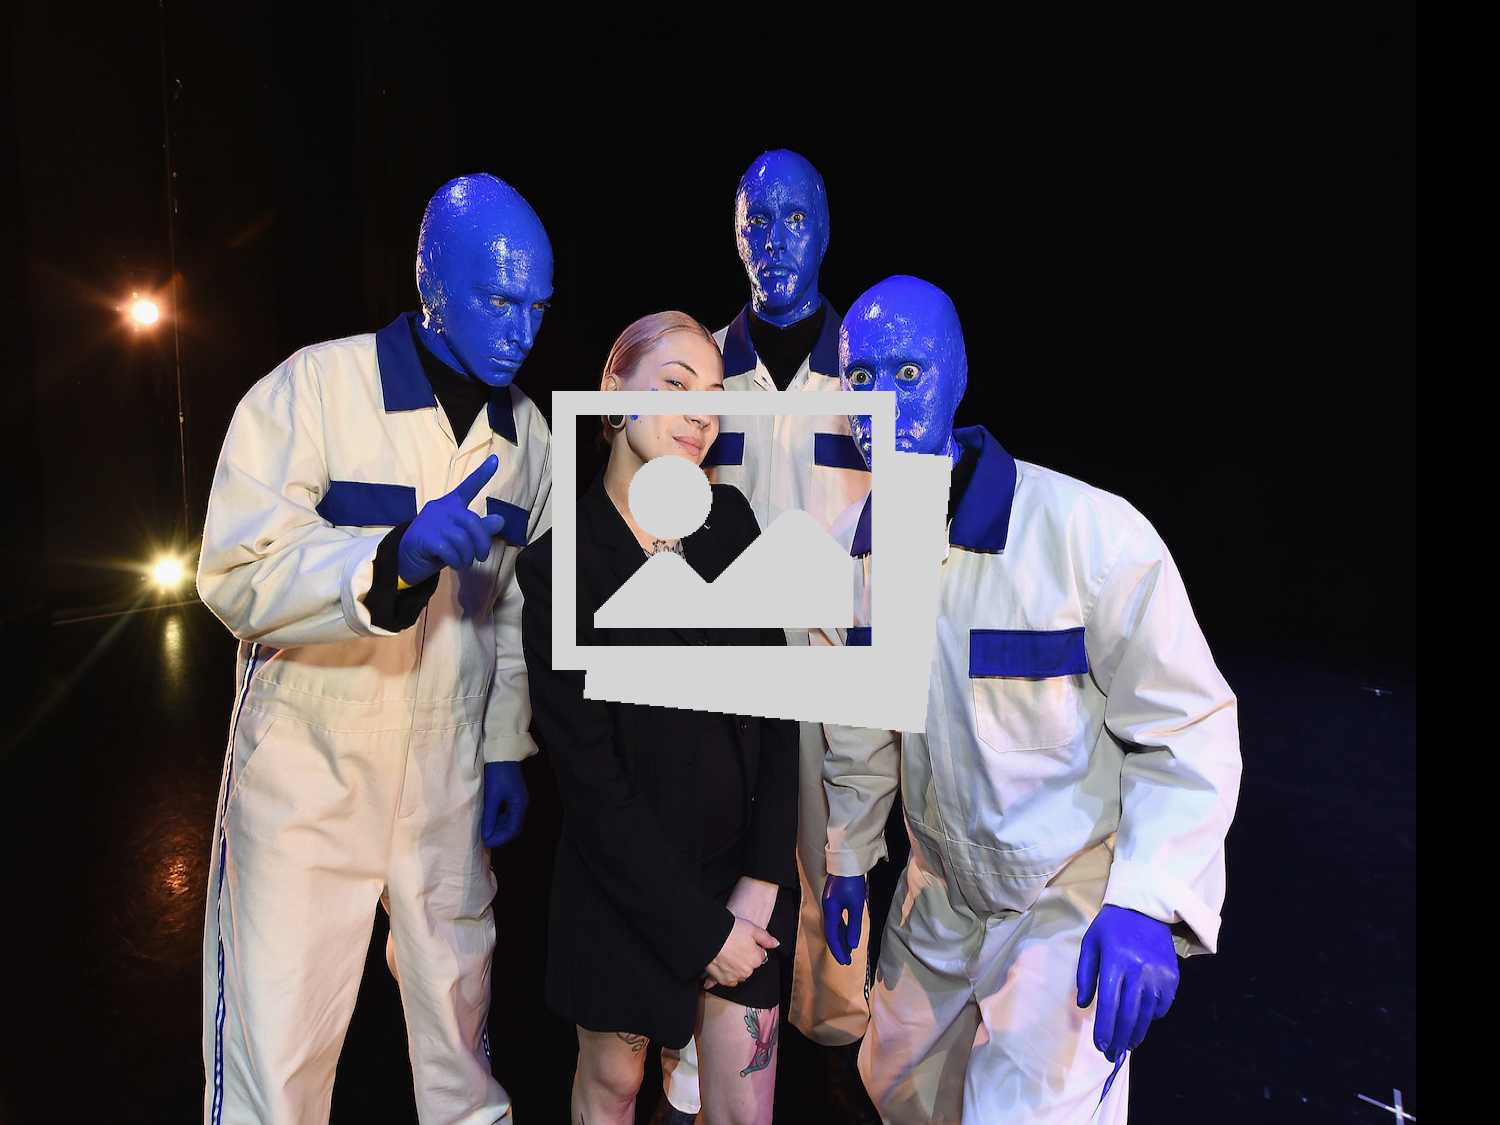 Project Runway's Helen Castillo Designs Blue Man Group-Inspired Jumpsuit